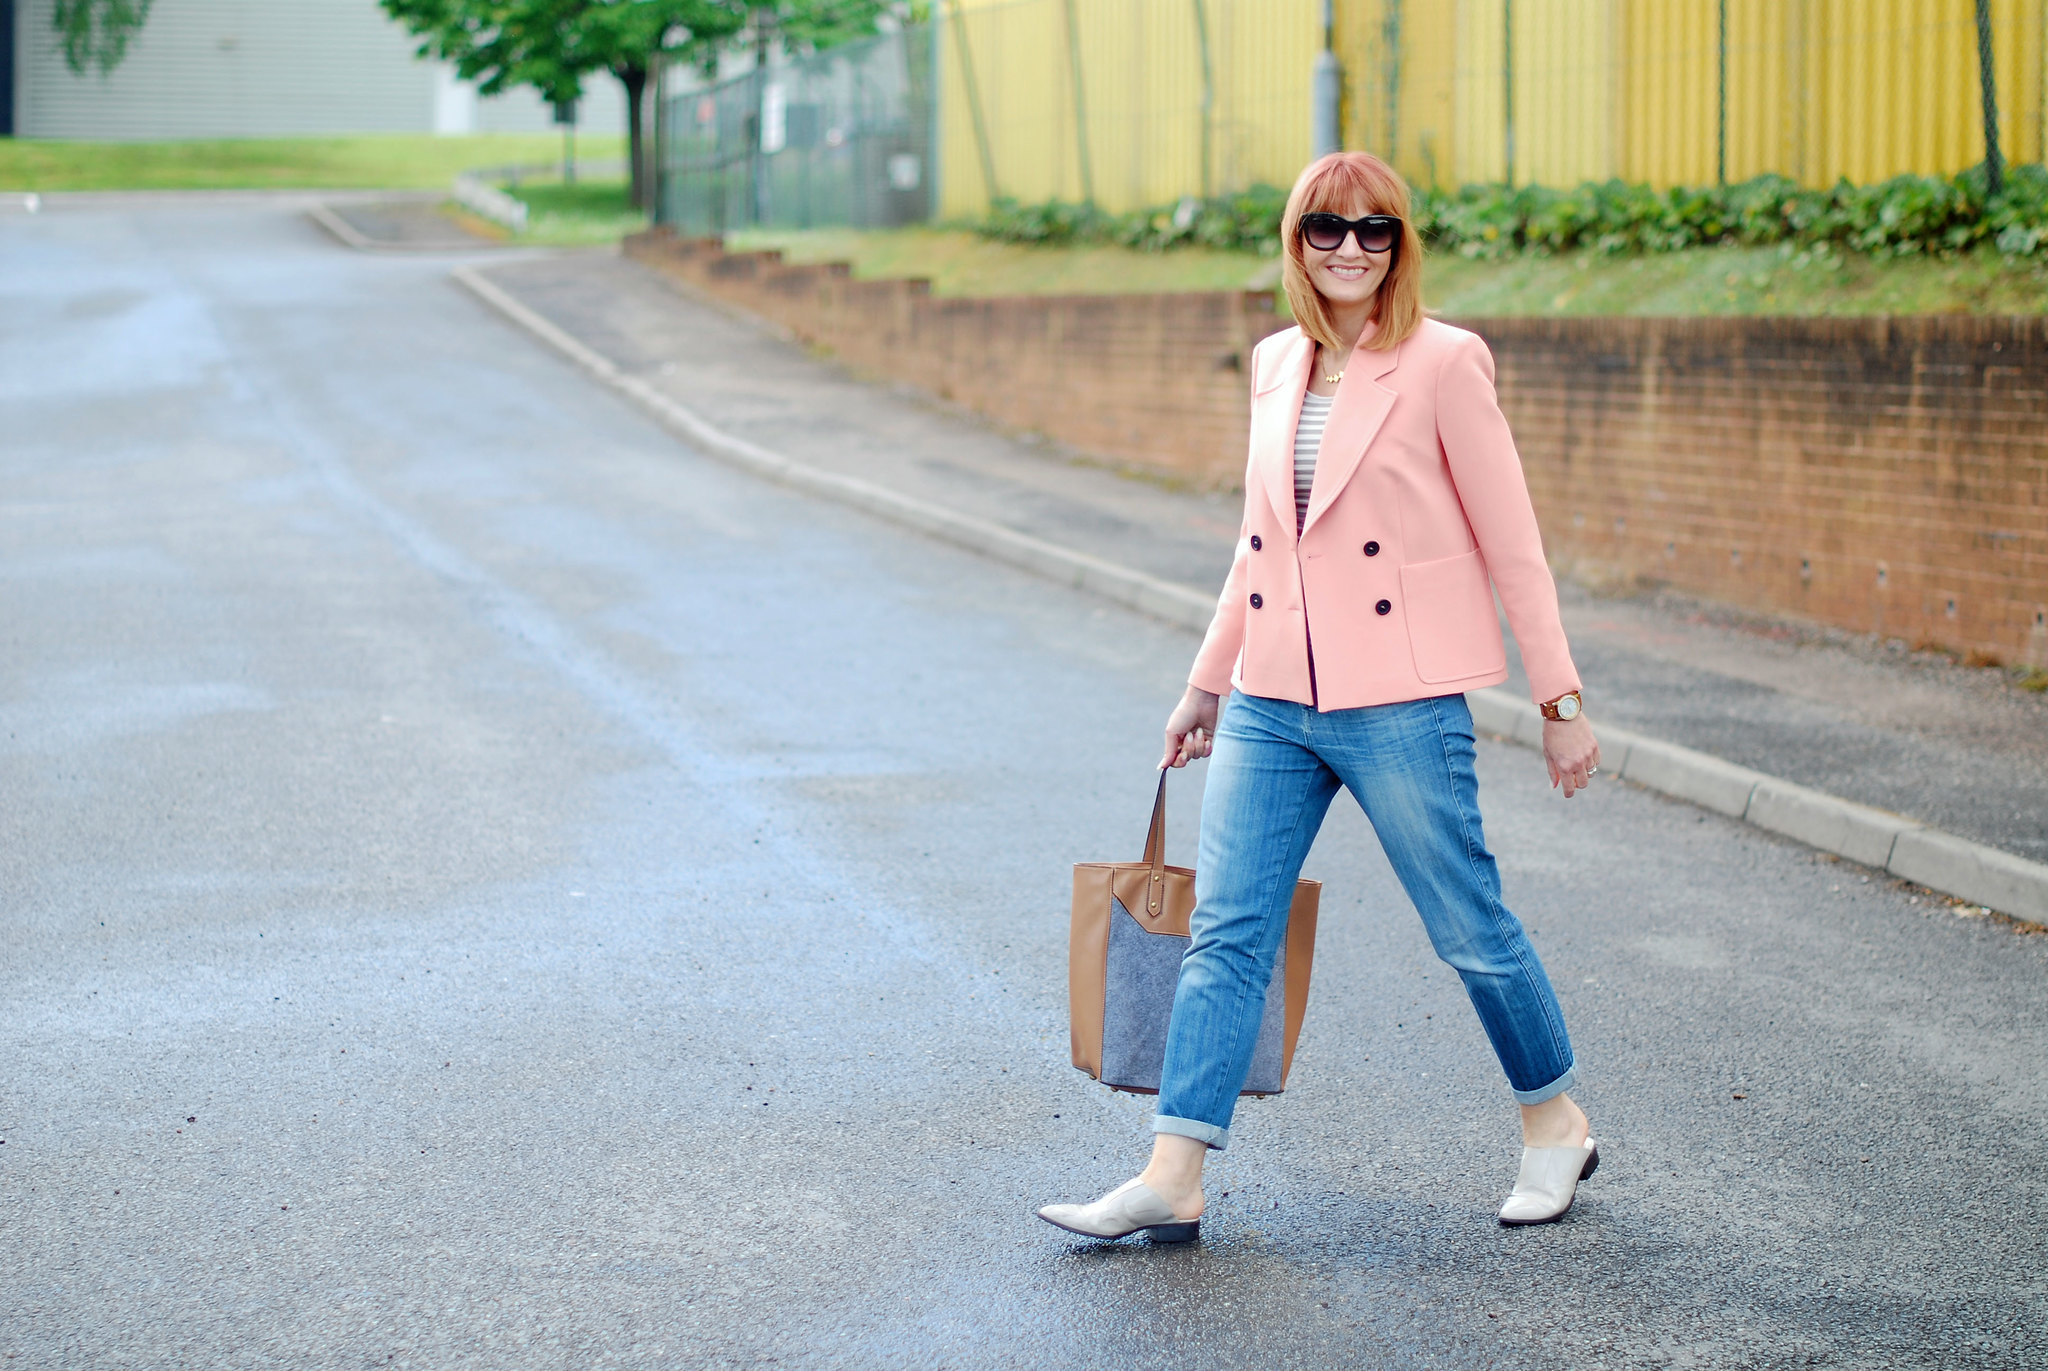 Relaxed Spring/Summer Style: Peach double breasted jacket, Breton striped top, boyfriend jeans | Not Dressed As Lamb